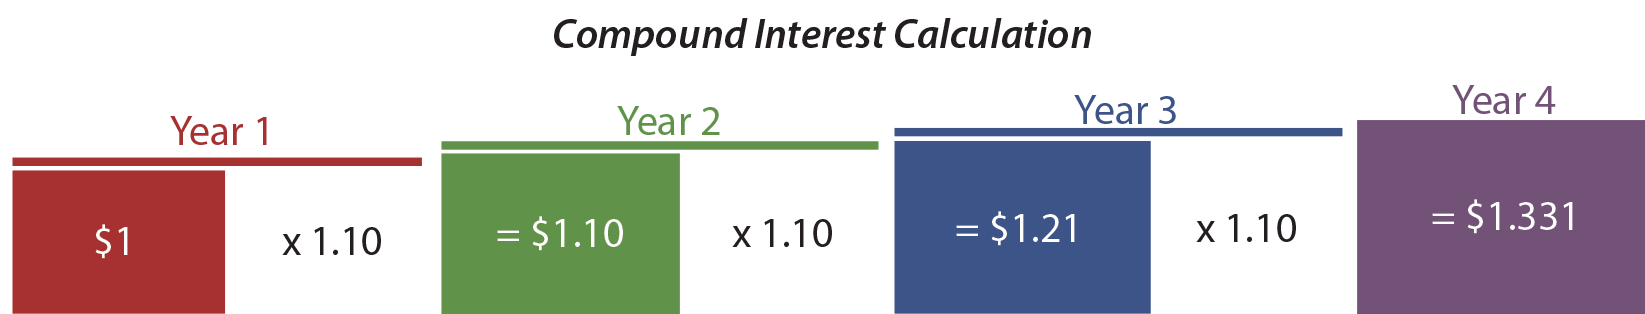 Compound Interest Calculation Illustration